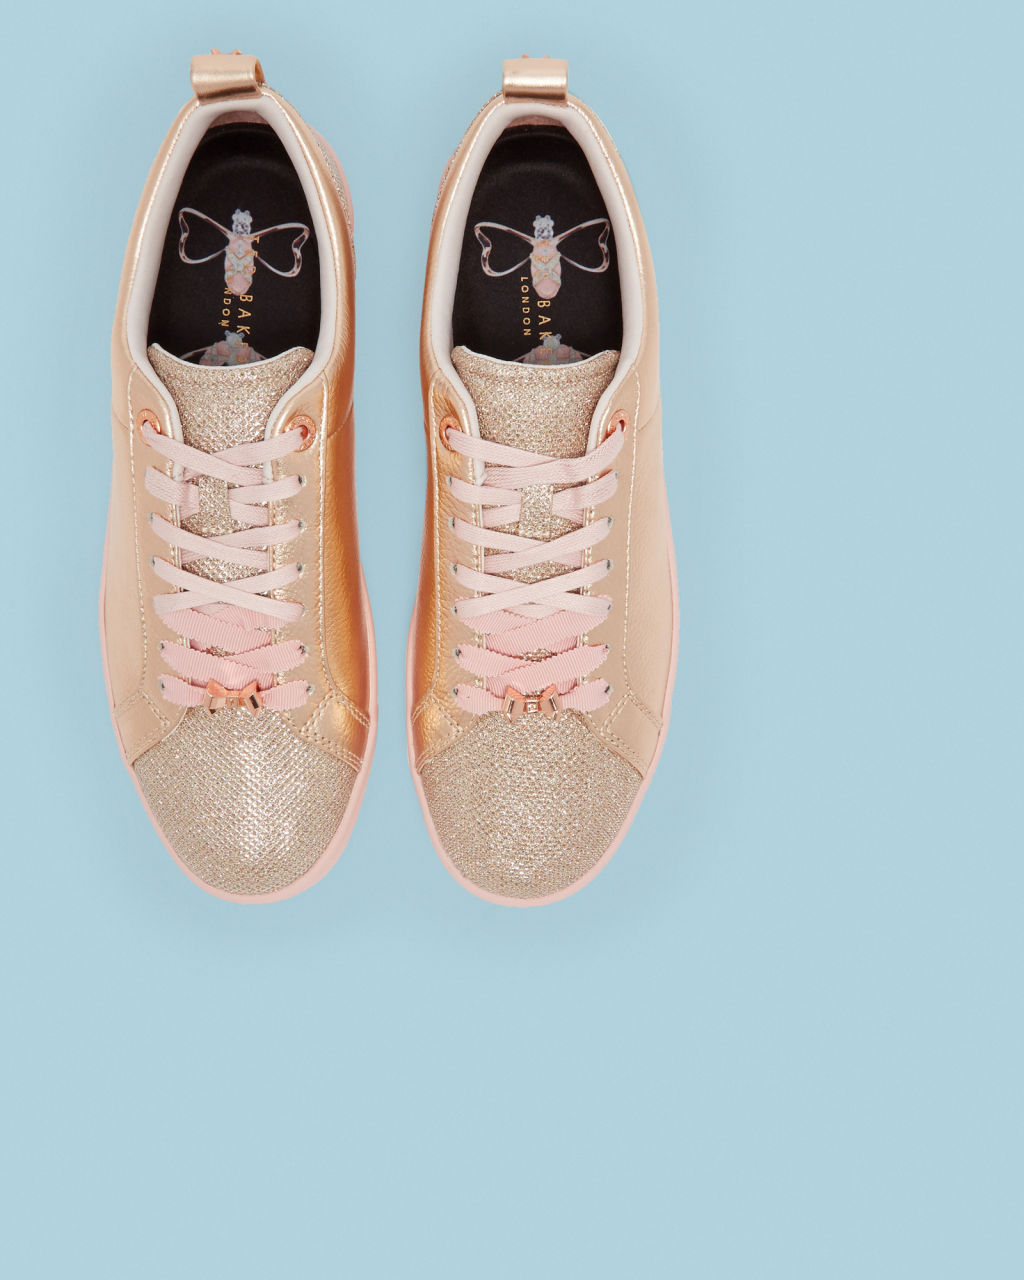 uk-Womens-Accessories-Shoes-KULEIC-Leather-glitter-tennis-trainers-Rose-Gold-HA7W_KULEIC_ROSEGOLD_6.jpg